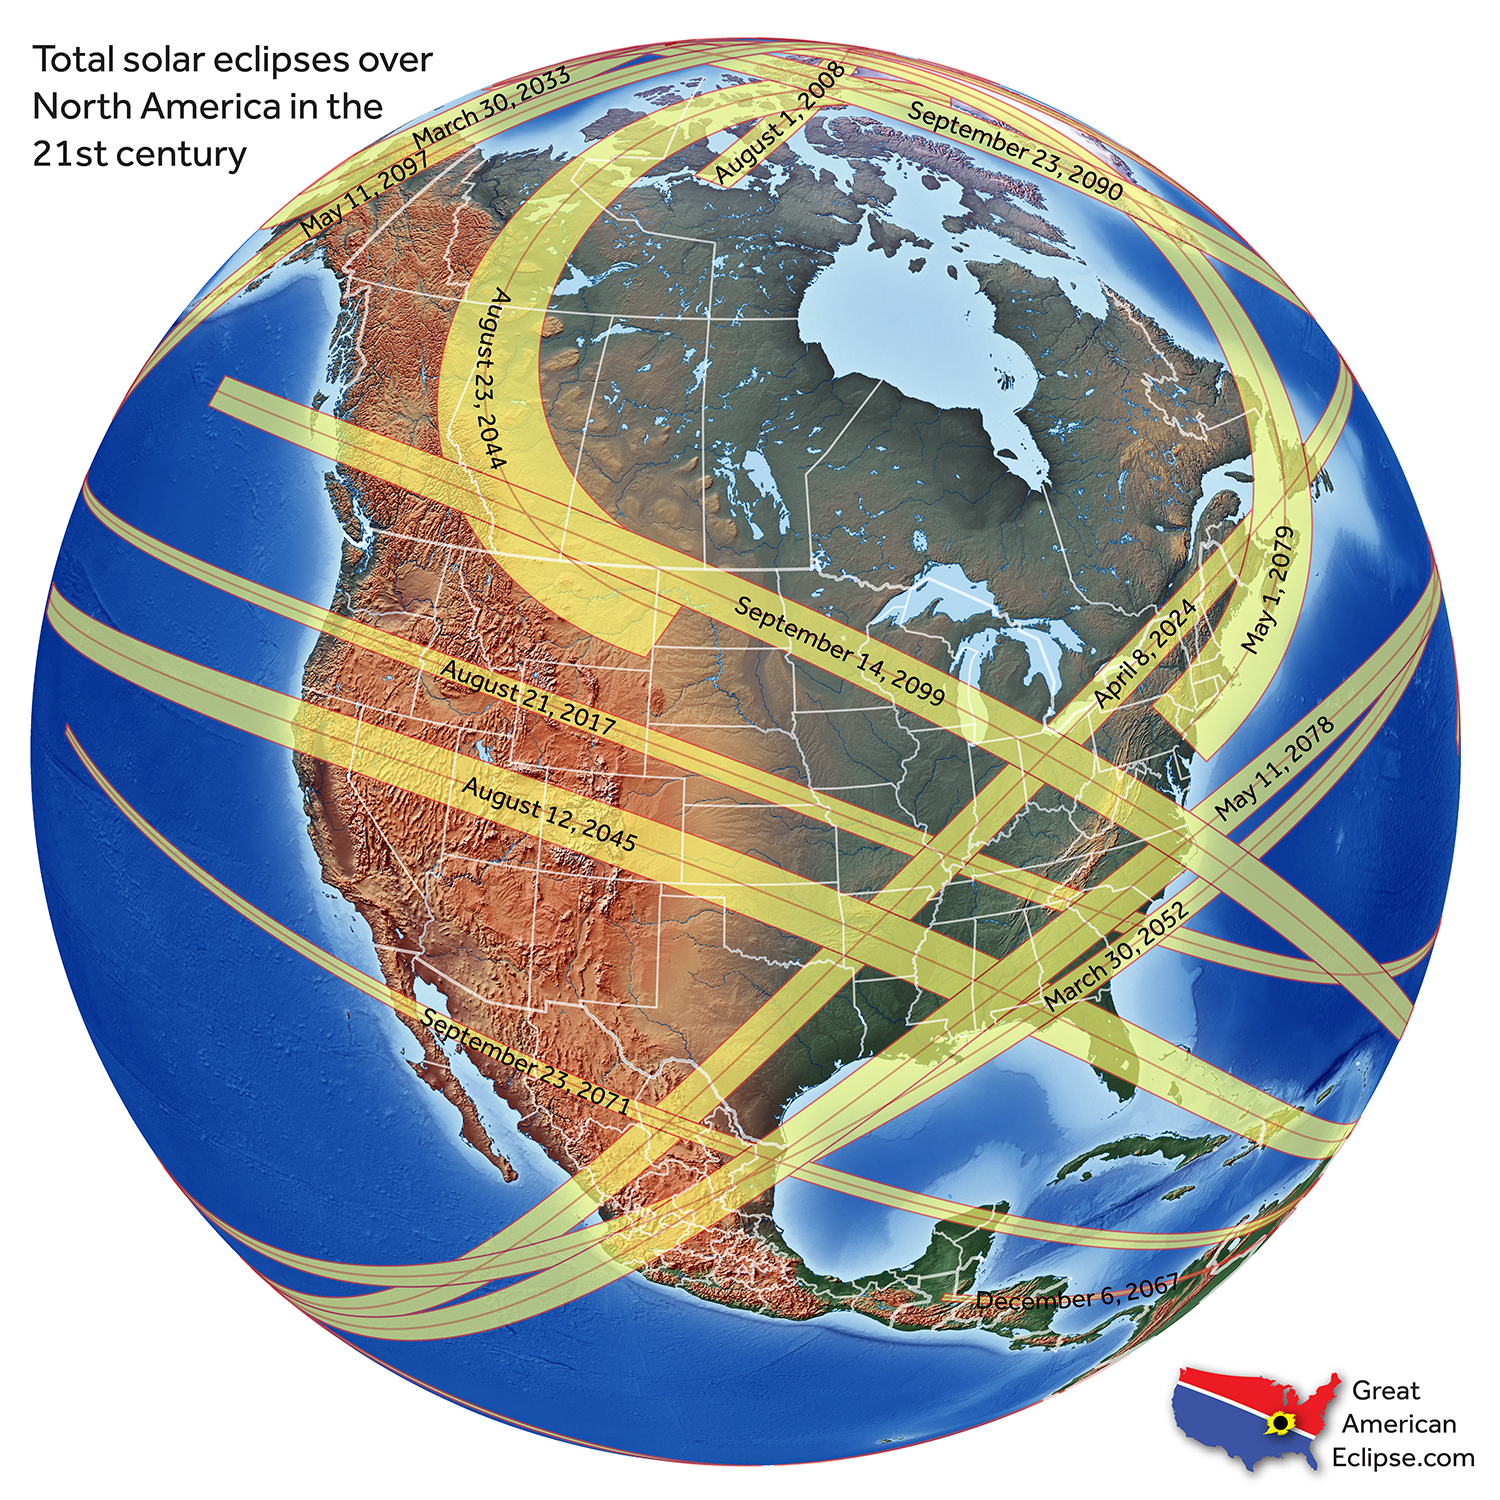 Three cool facts about the upcoming solar eclipse